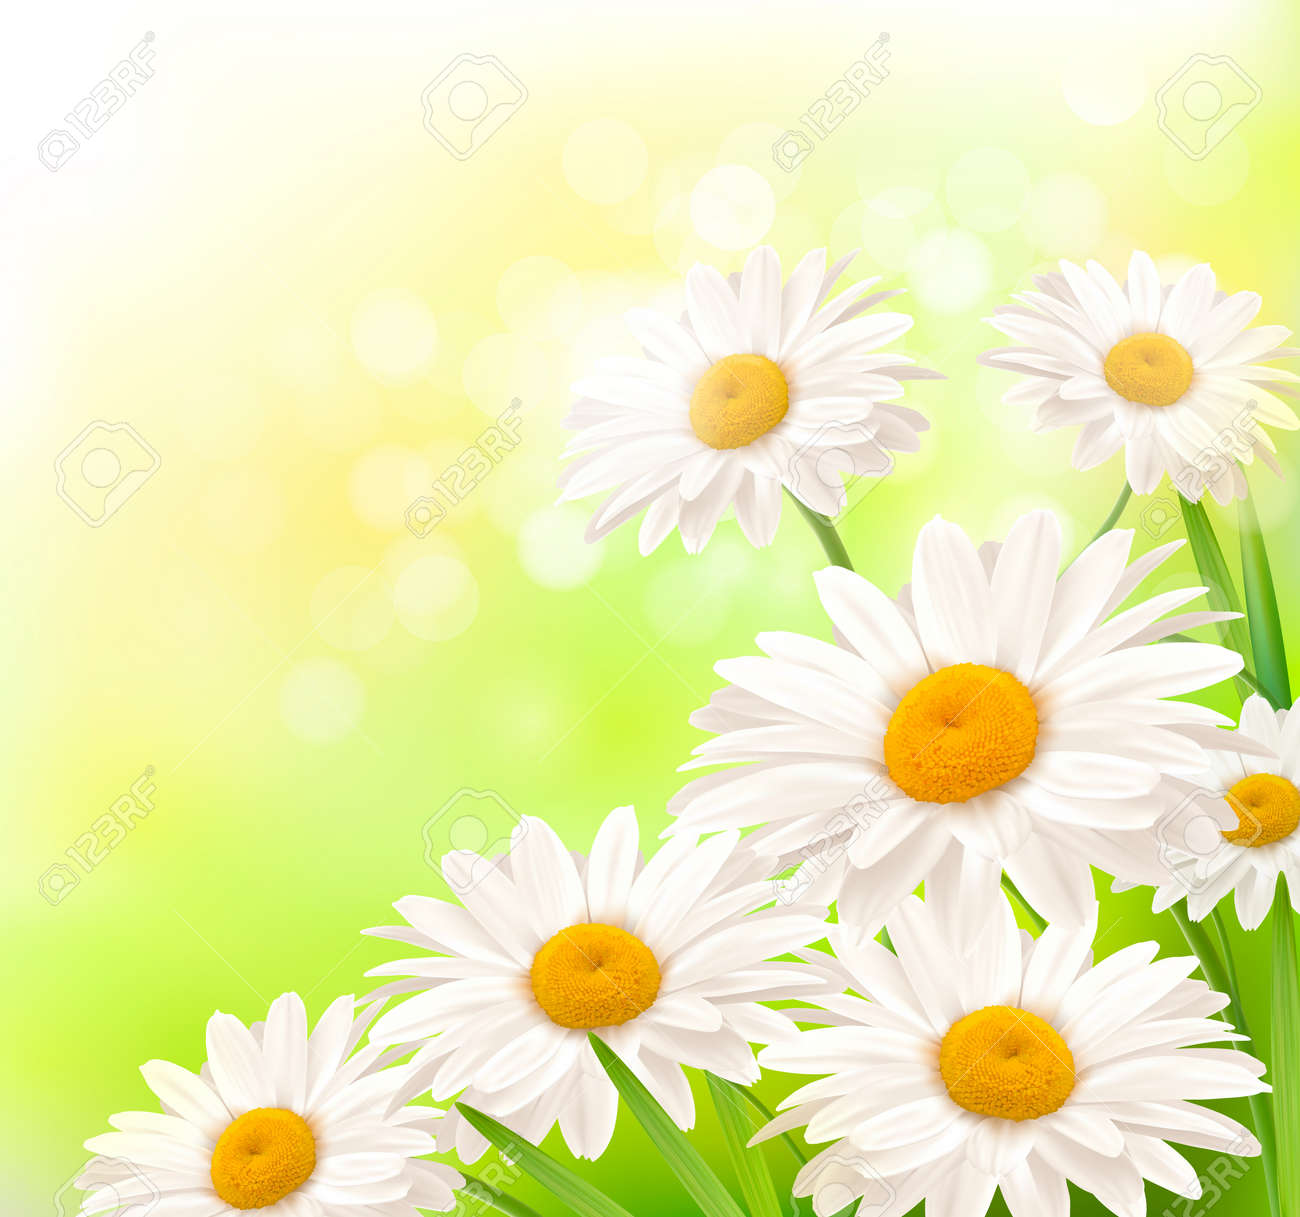 Beautiful background with grass and daisies  Vector Stock Vector - 12772823